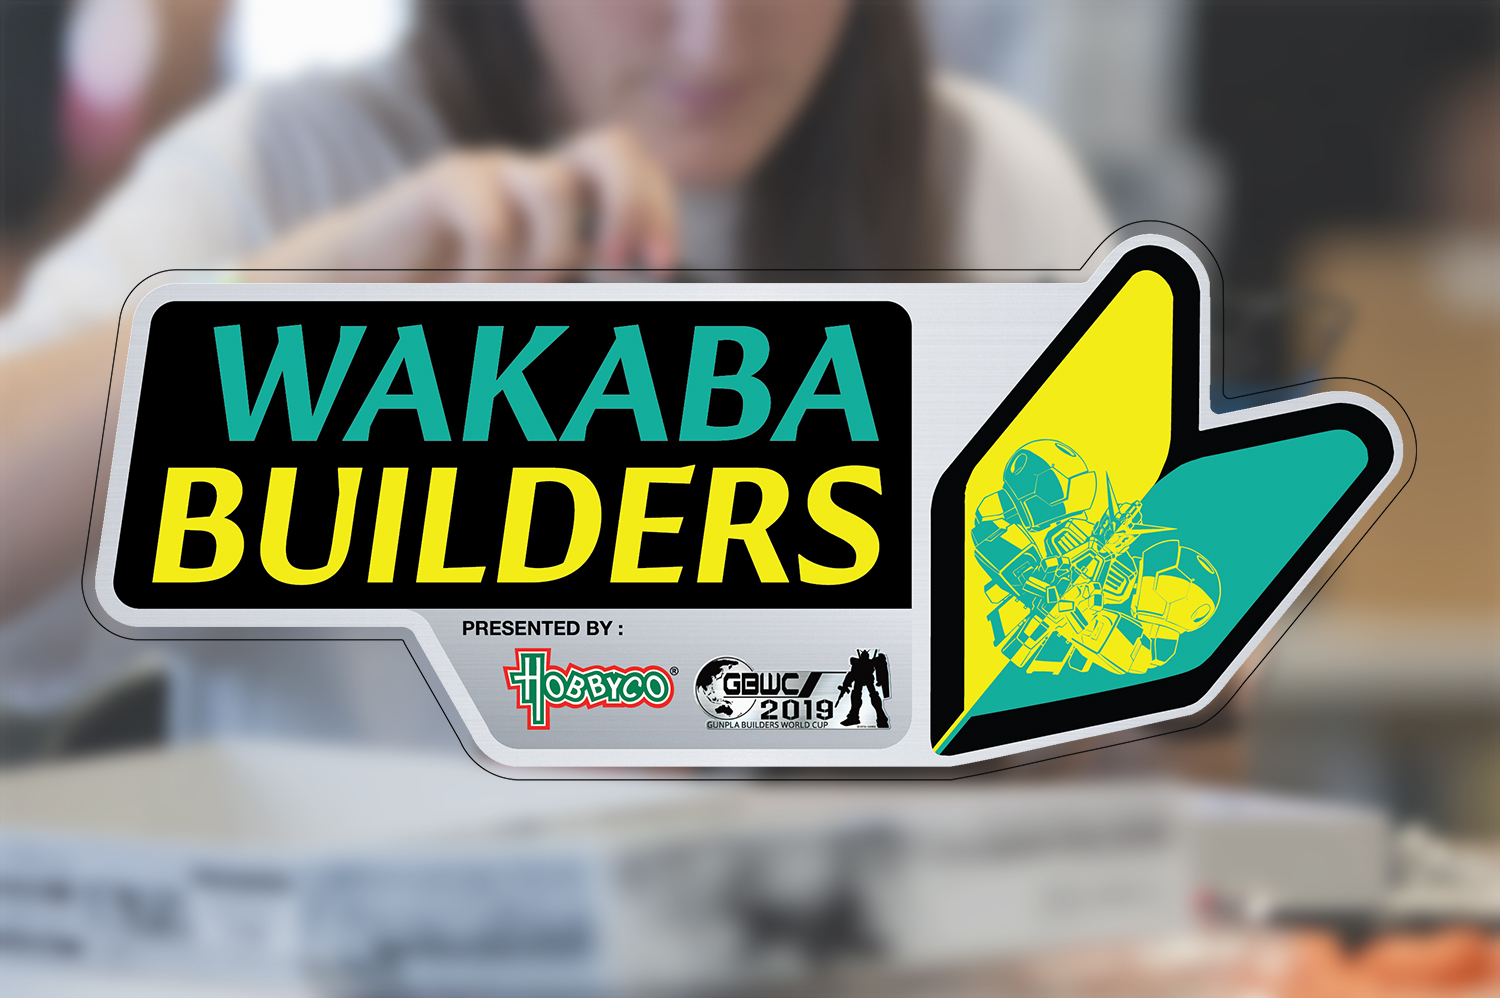 WAKABA BUILDERS CUP - Not Quite ready to challenge GBWC? Try out our new Wakaba Builders Cup!A new, unique to Australia category of GBWC,Wakaba Builders category is specifically designed for beginners in mind